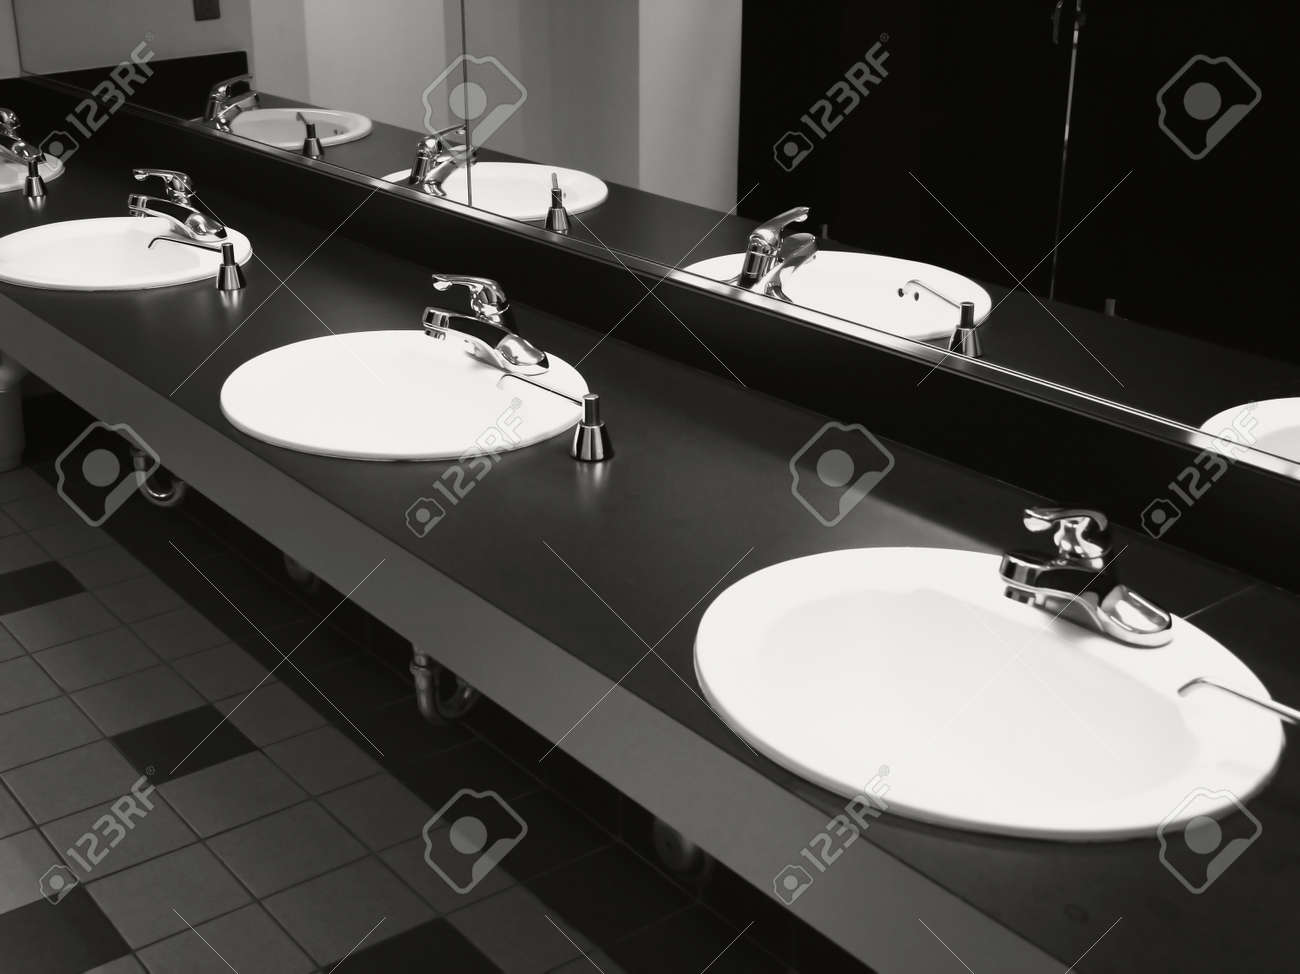 Bathroom wash basins and taps on black top Stock Photo   1717234. Bathroom Wash Basins And Taps On Black Top Stock Photo  Picture